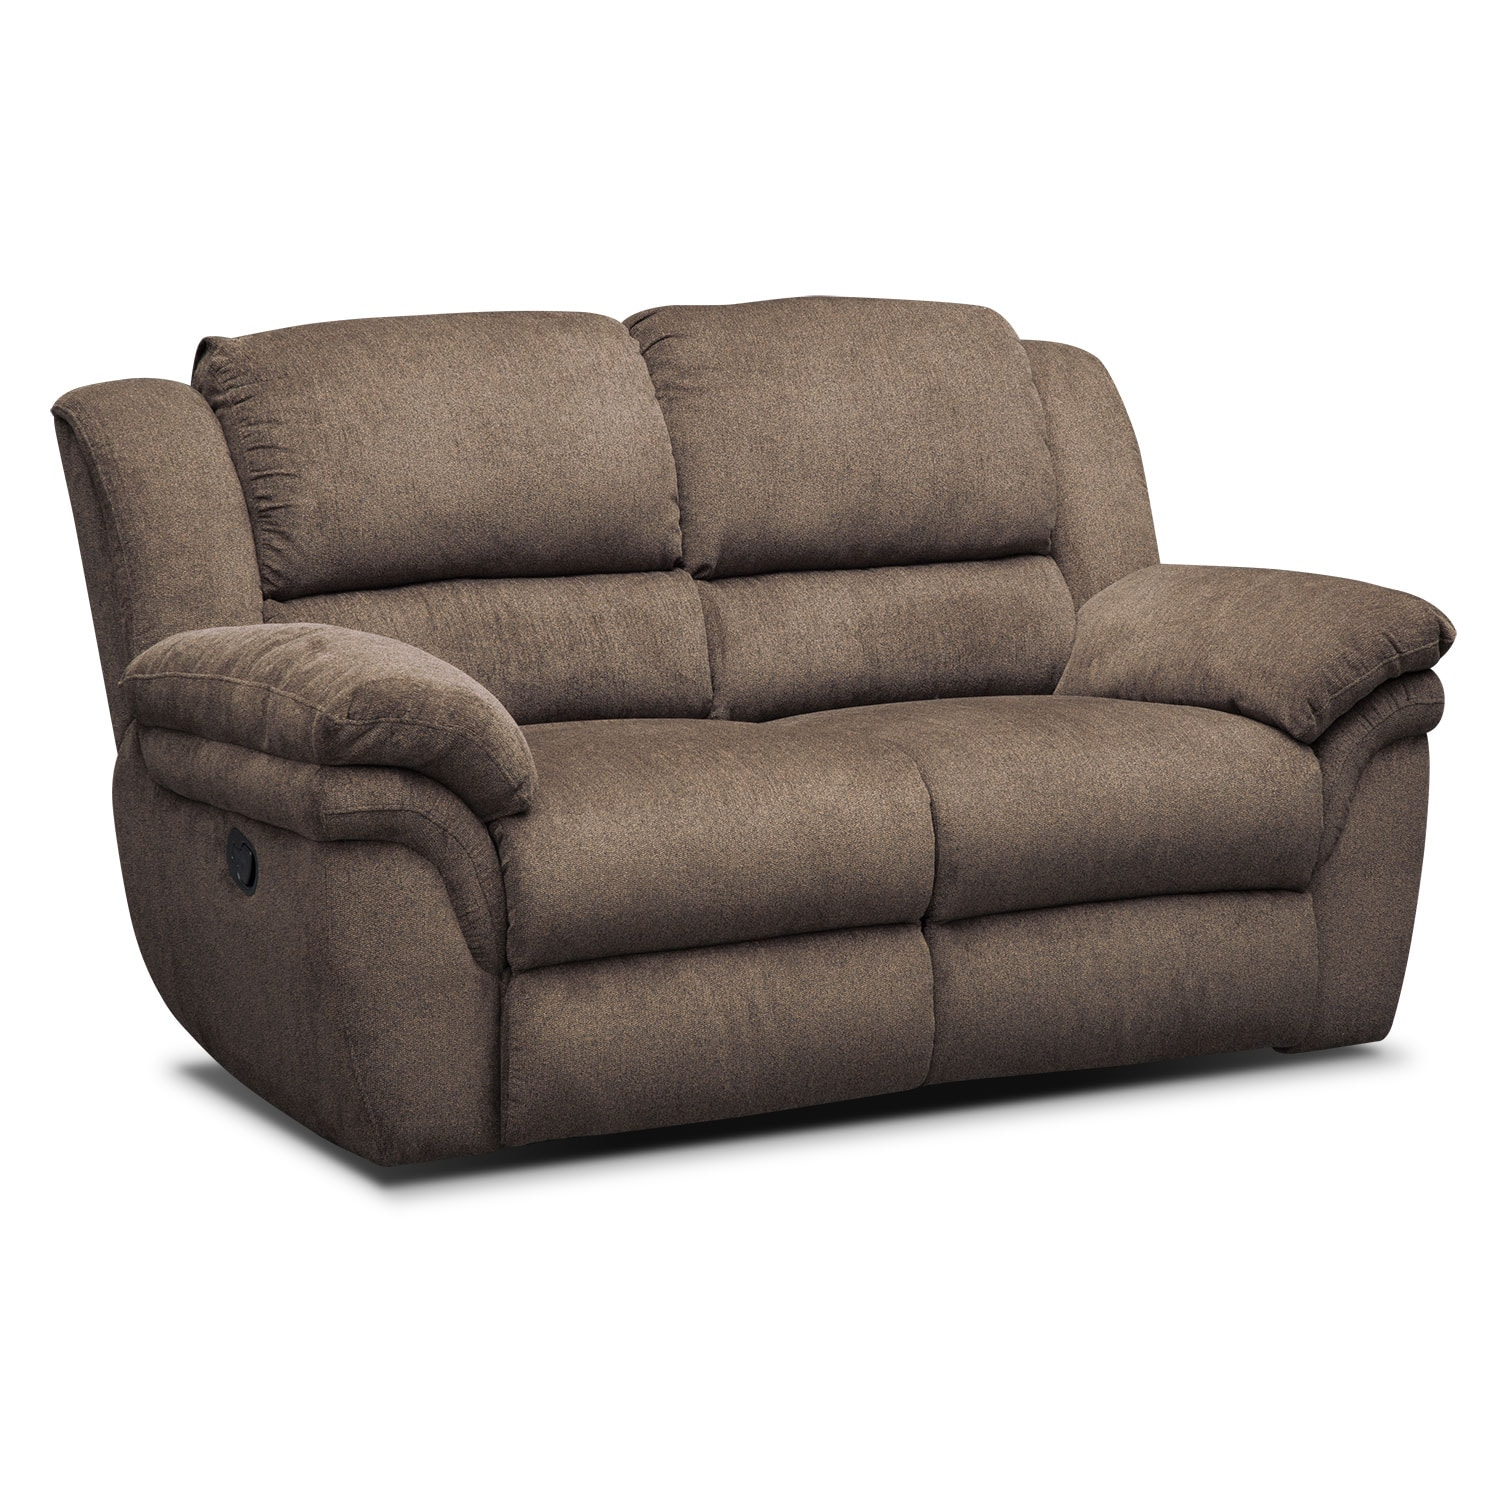 Dual recliner owen dual reclining loveseat sc 1 st lacks for Signature furniture